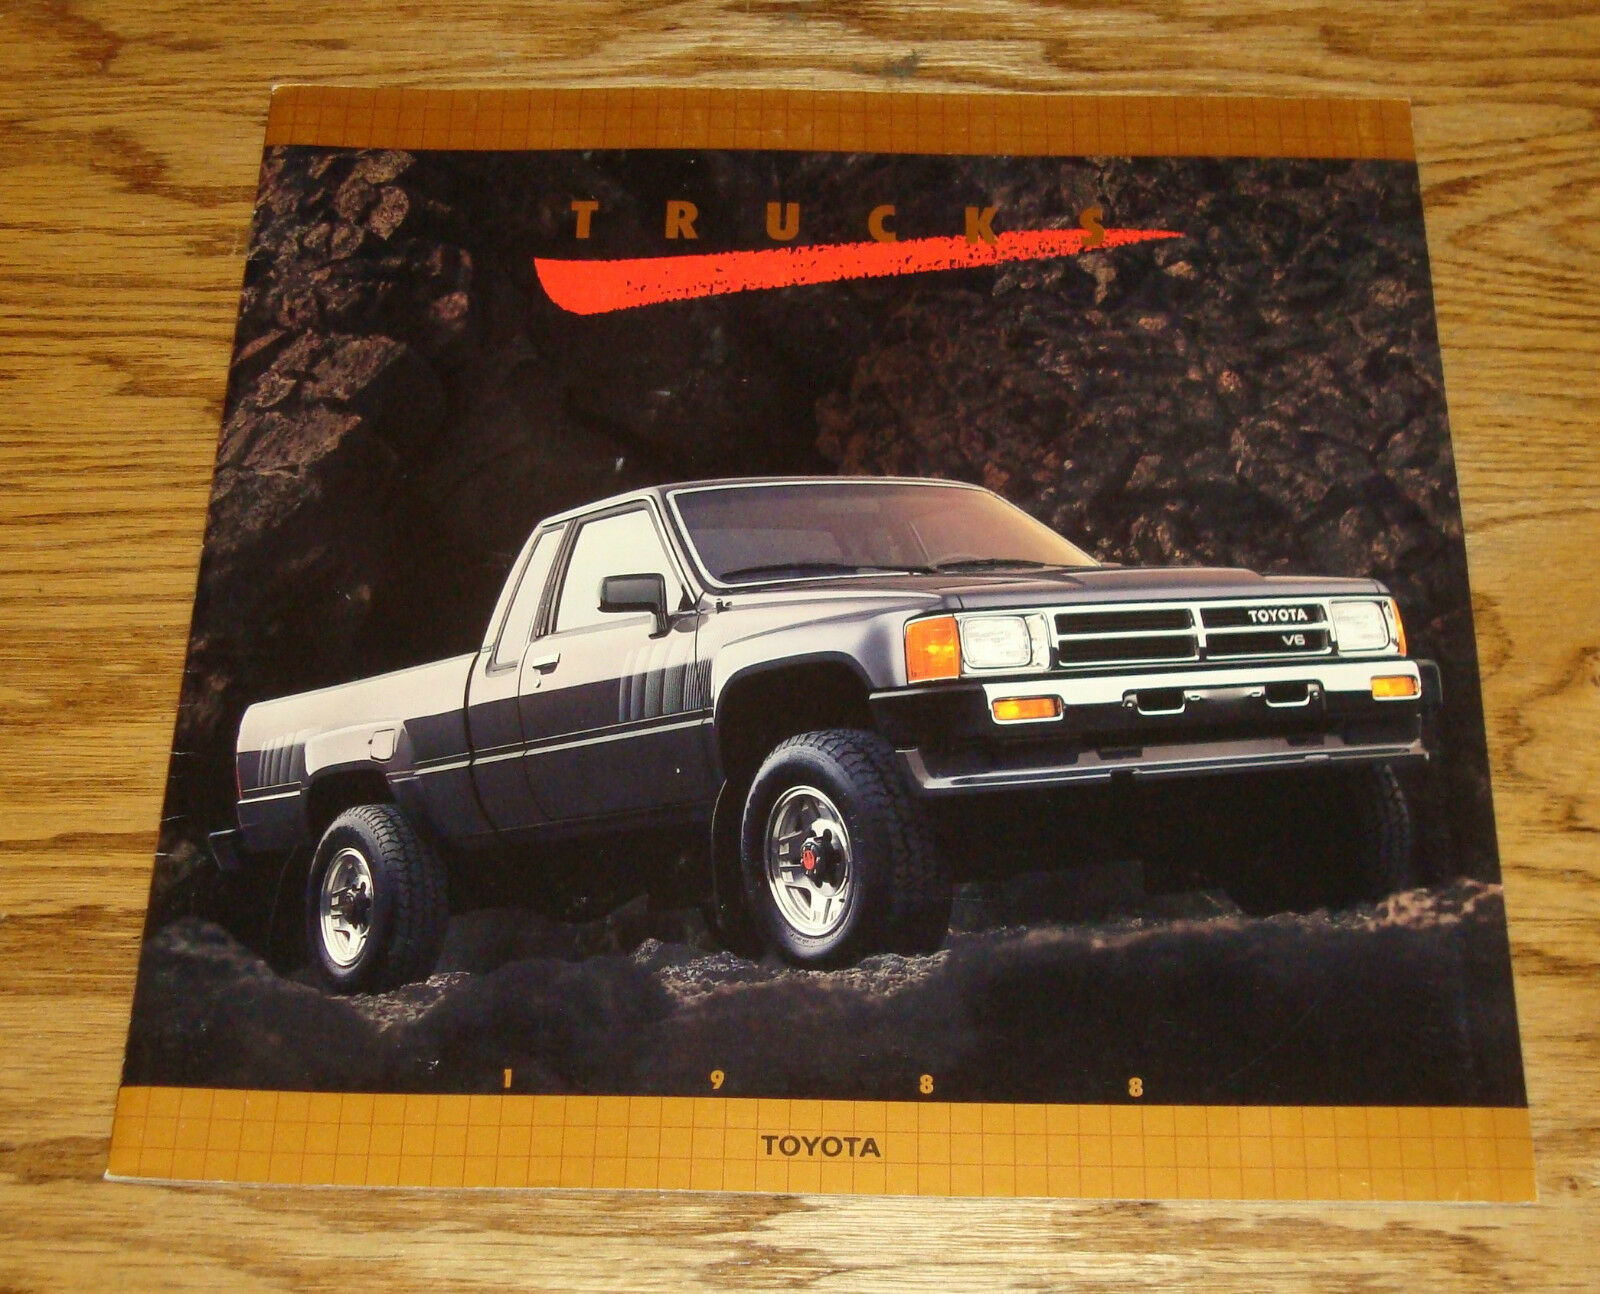 Original 1988 Toyota Truck Full Line Deluxe Sales Brochure 88 4x4 1957 Chevy For Sale 1 Of 2only 3 Available